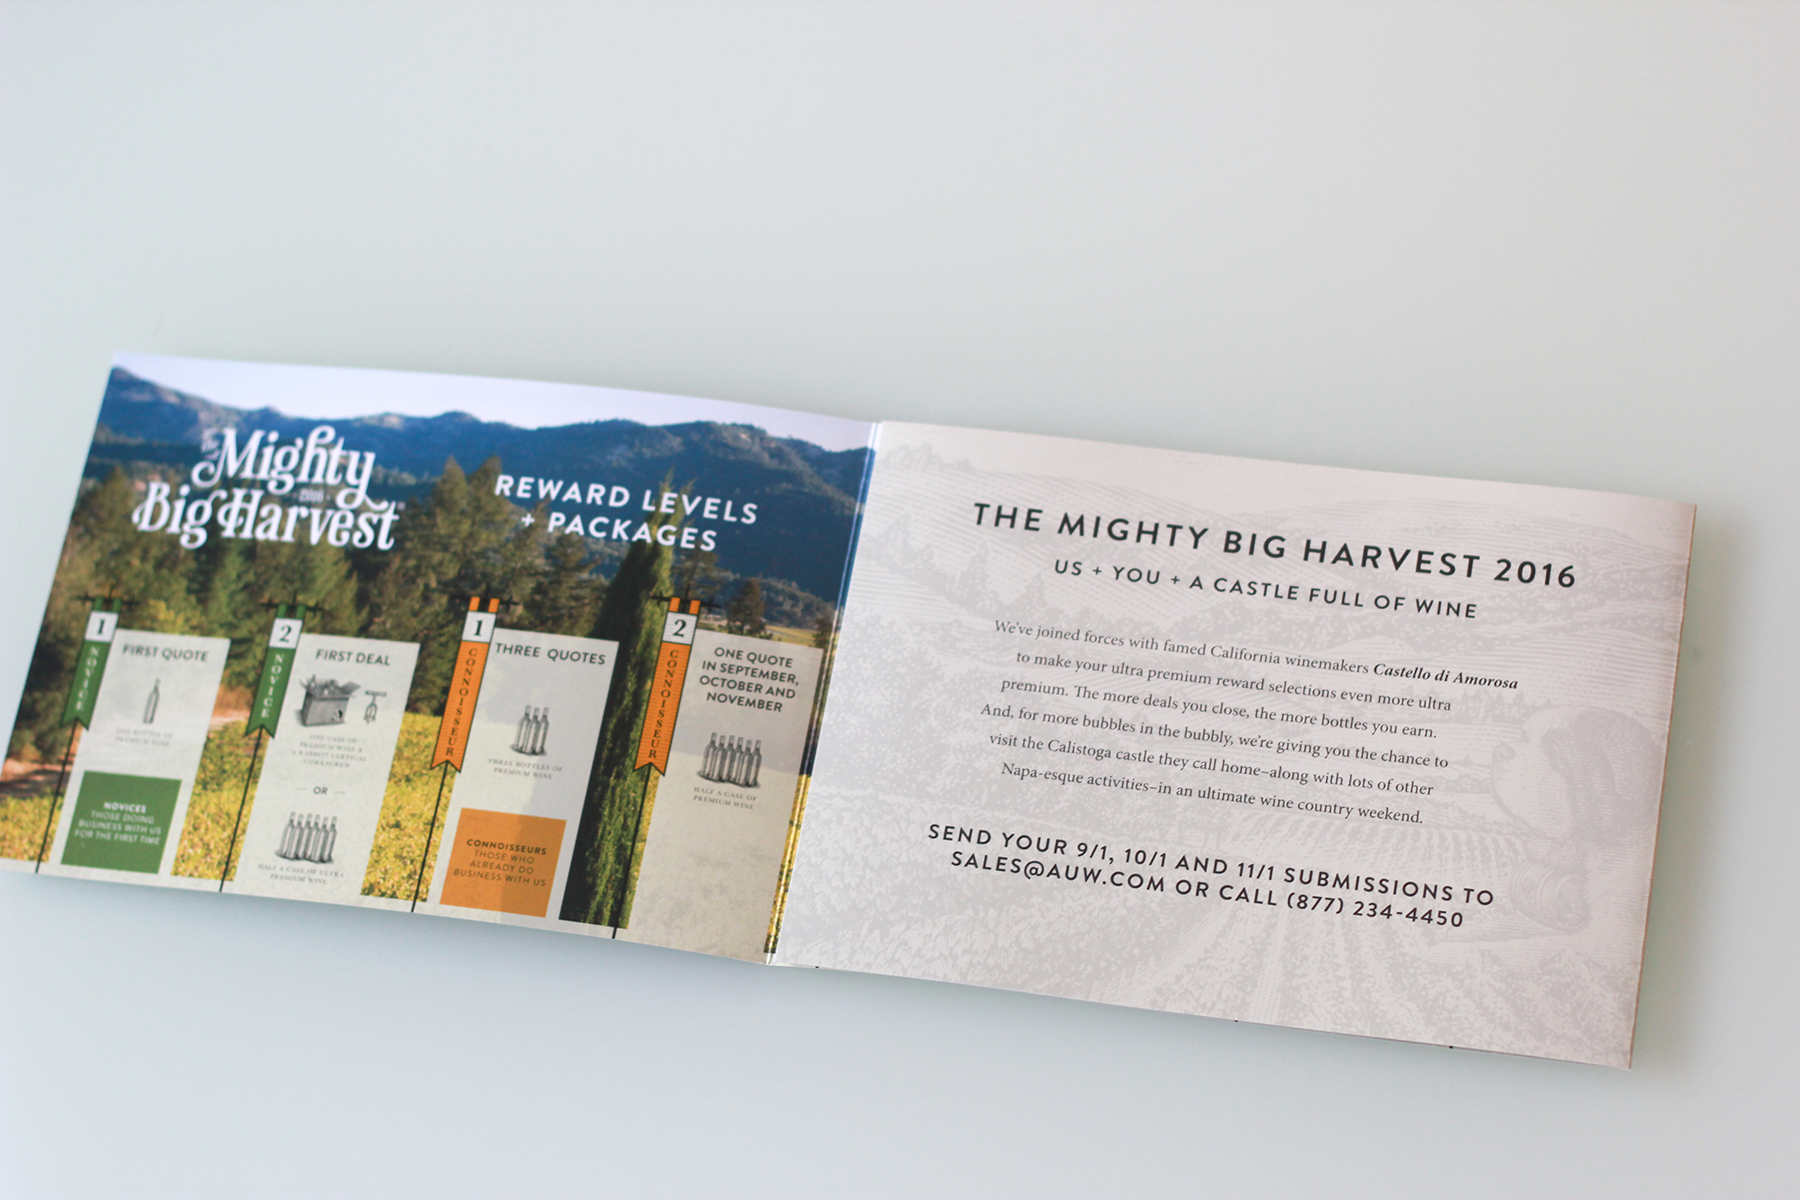 auw-mighty-big-harvest-2016-box-12-reward-chart-first-open